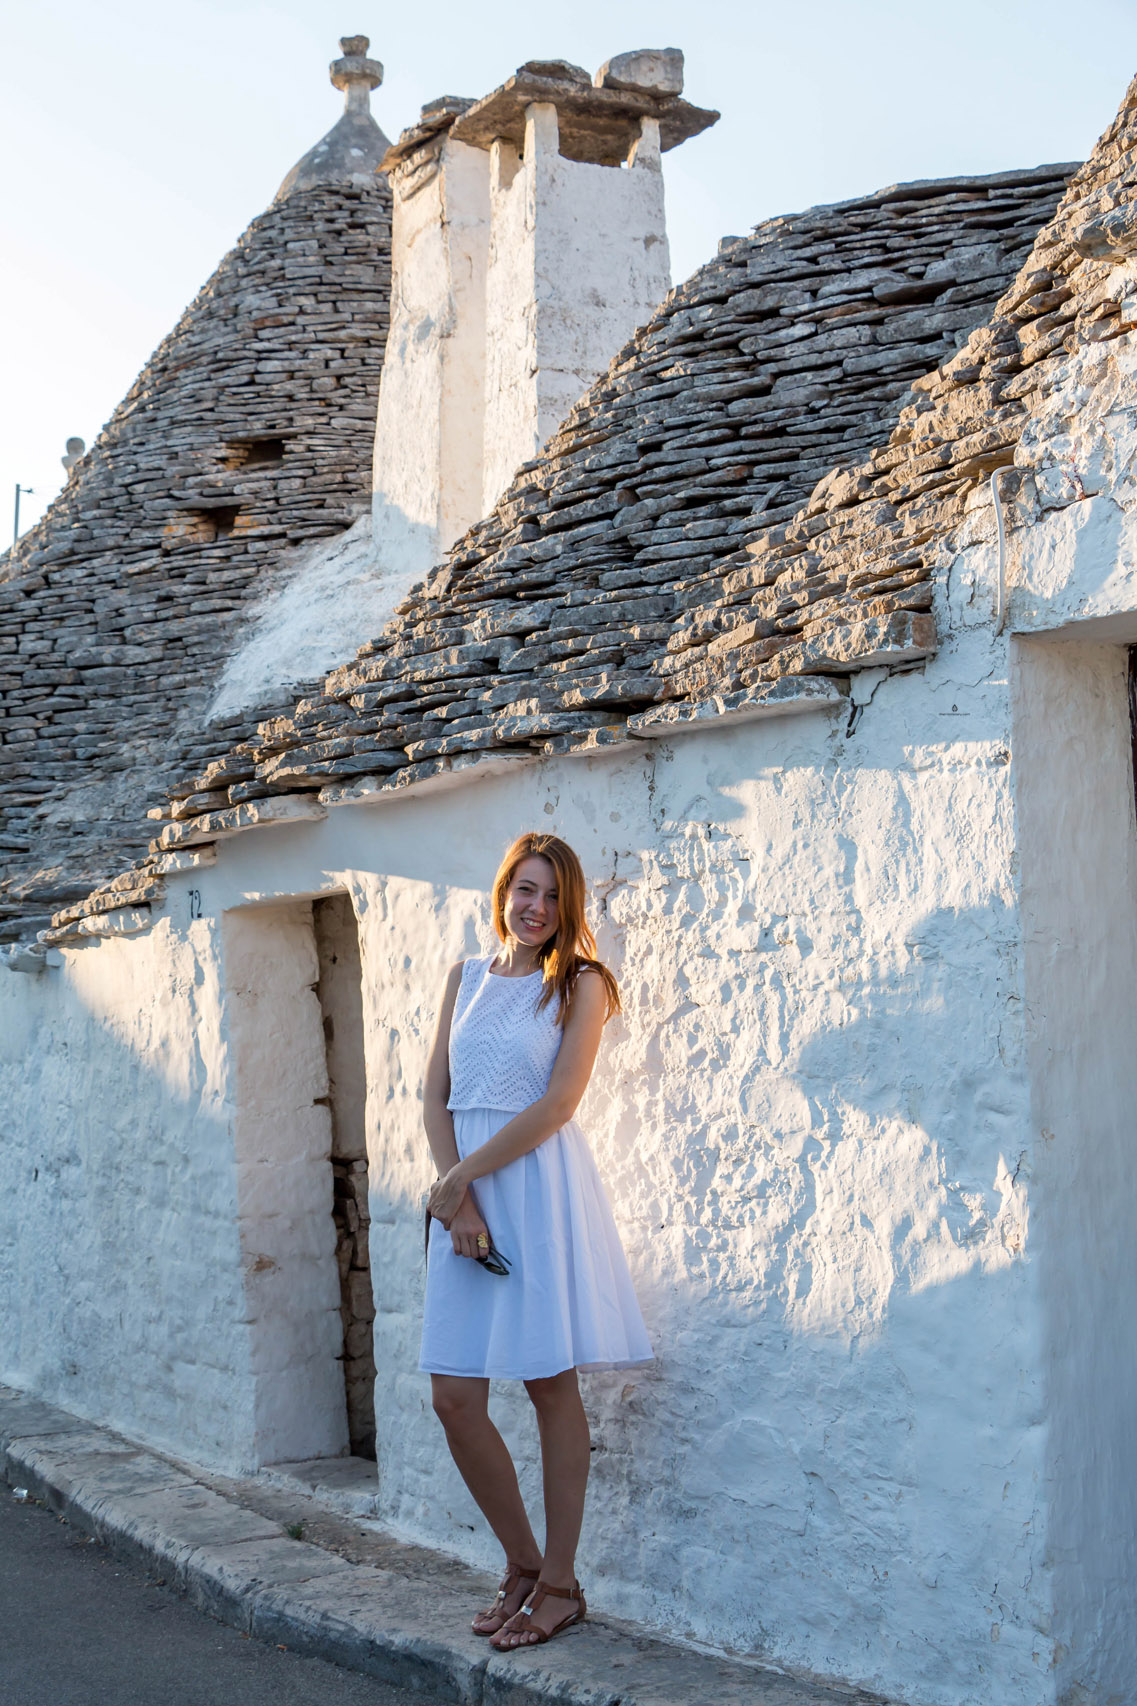 Summer in Alberobello, Italy